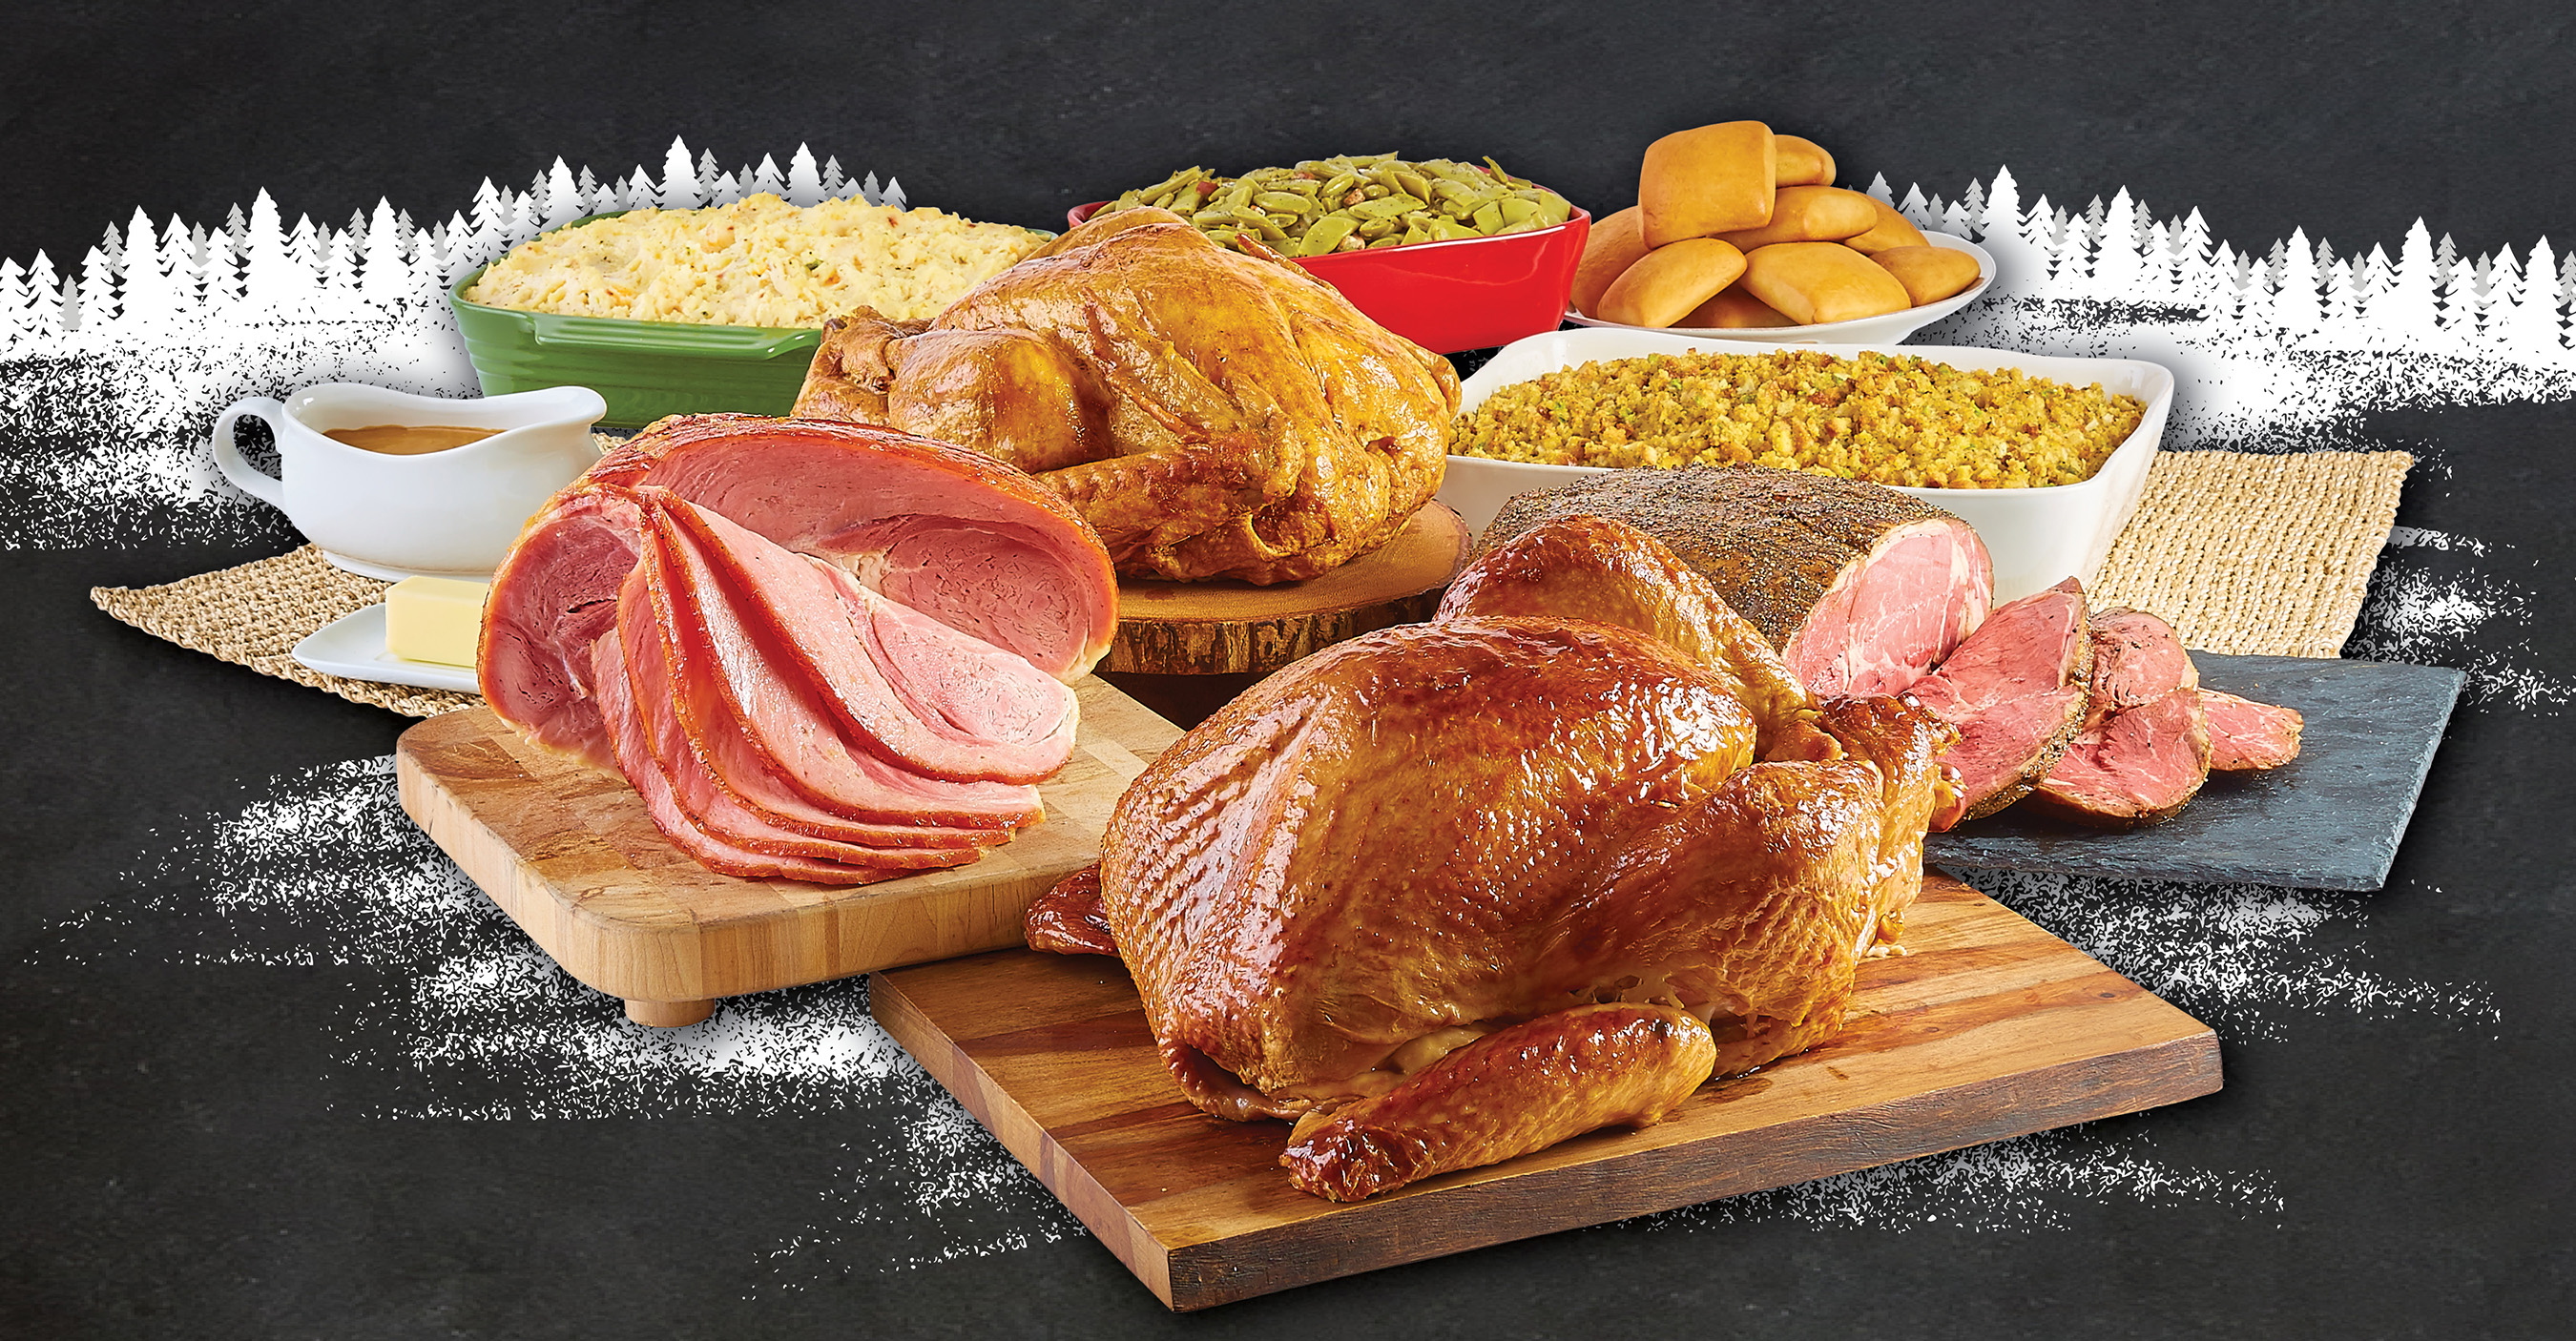 Dickey's offers full holiday feasts and a la carte meats